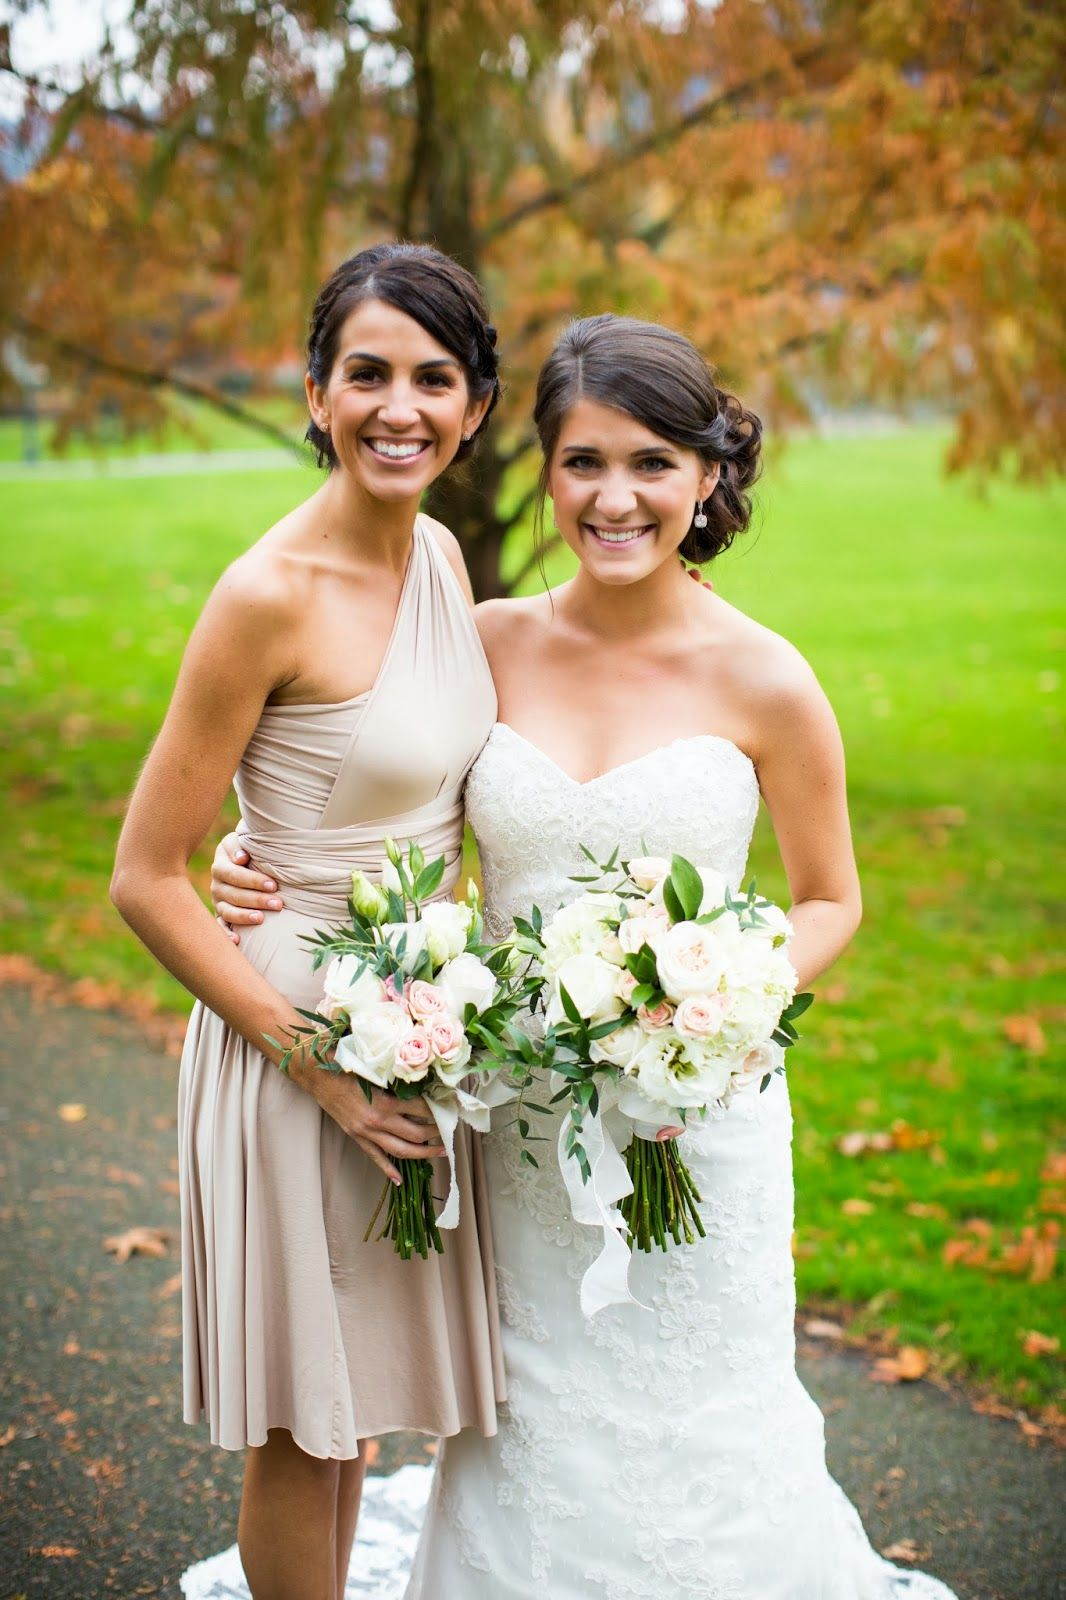 Our wedding cassablanca 1975 dress neutral bridesmaid dresses our wedding cassablanca 1975 dress neutral bridesmaid dresses cathedral park portland ombrellifo Image collections